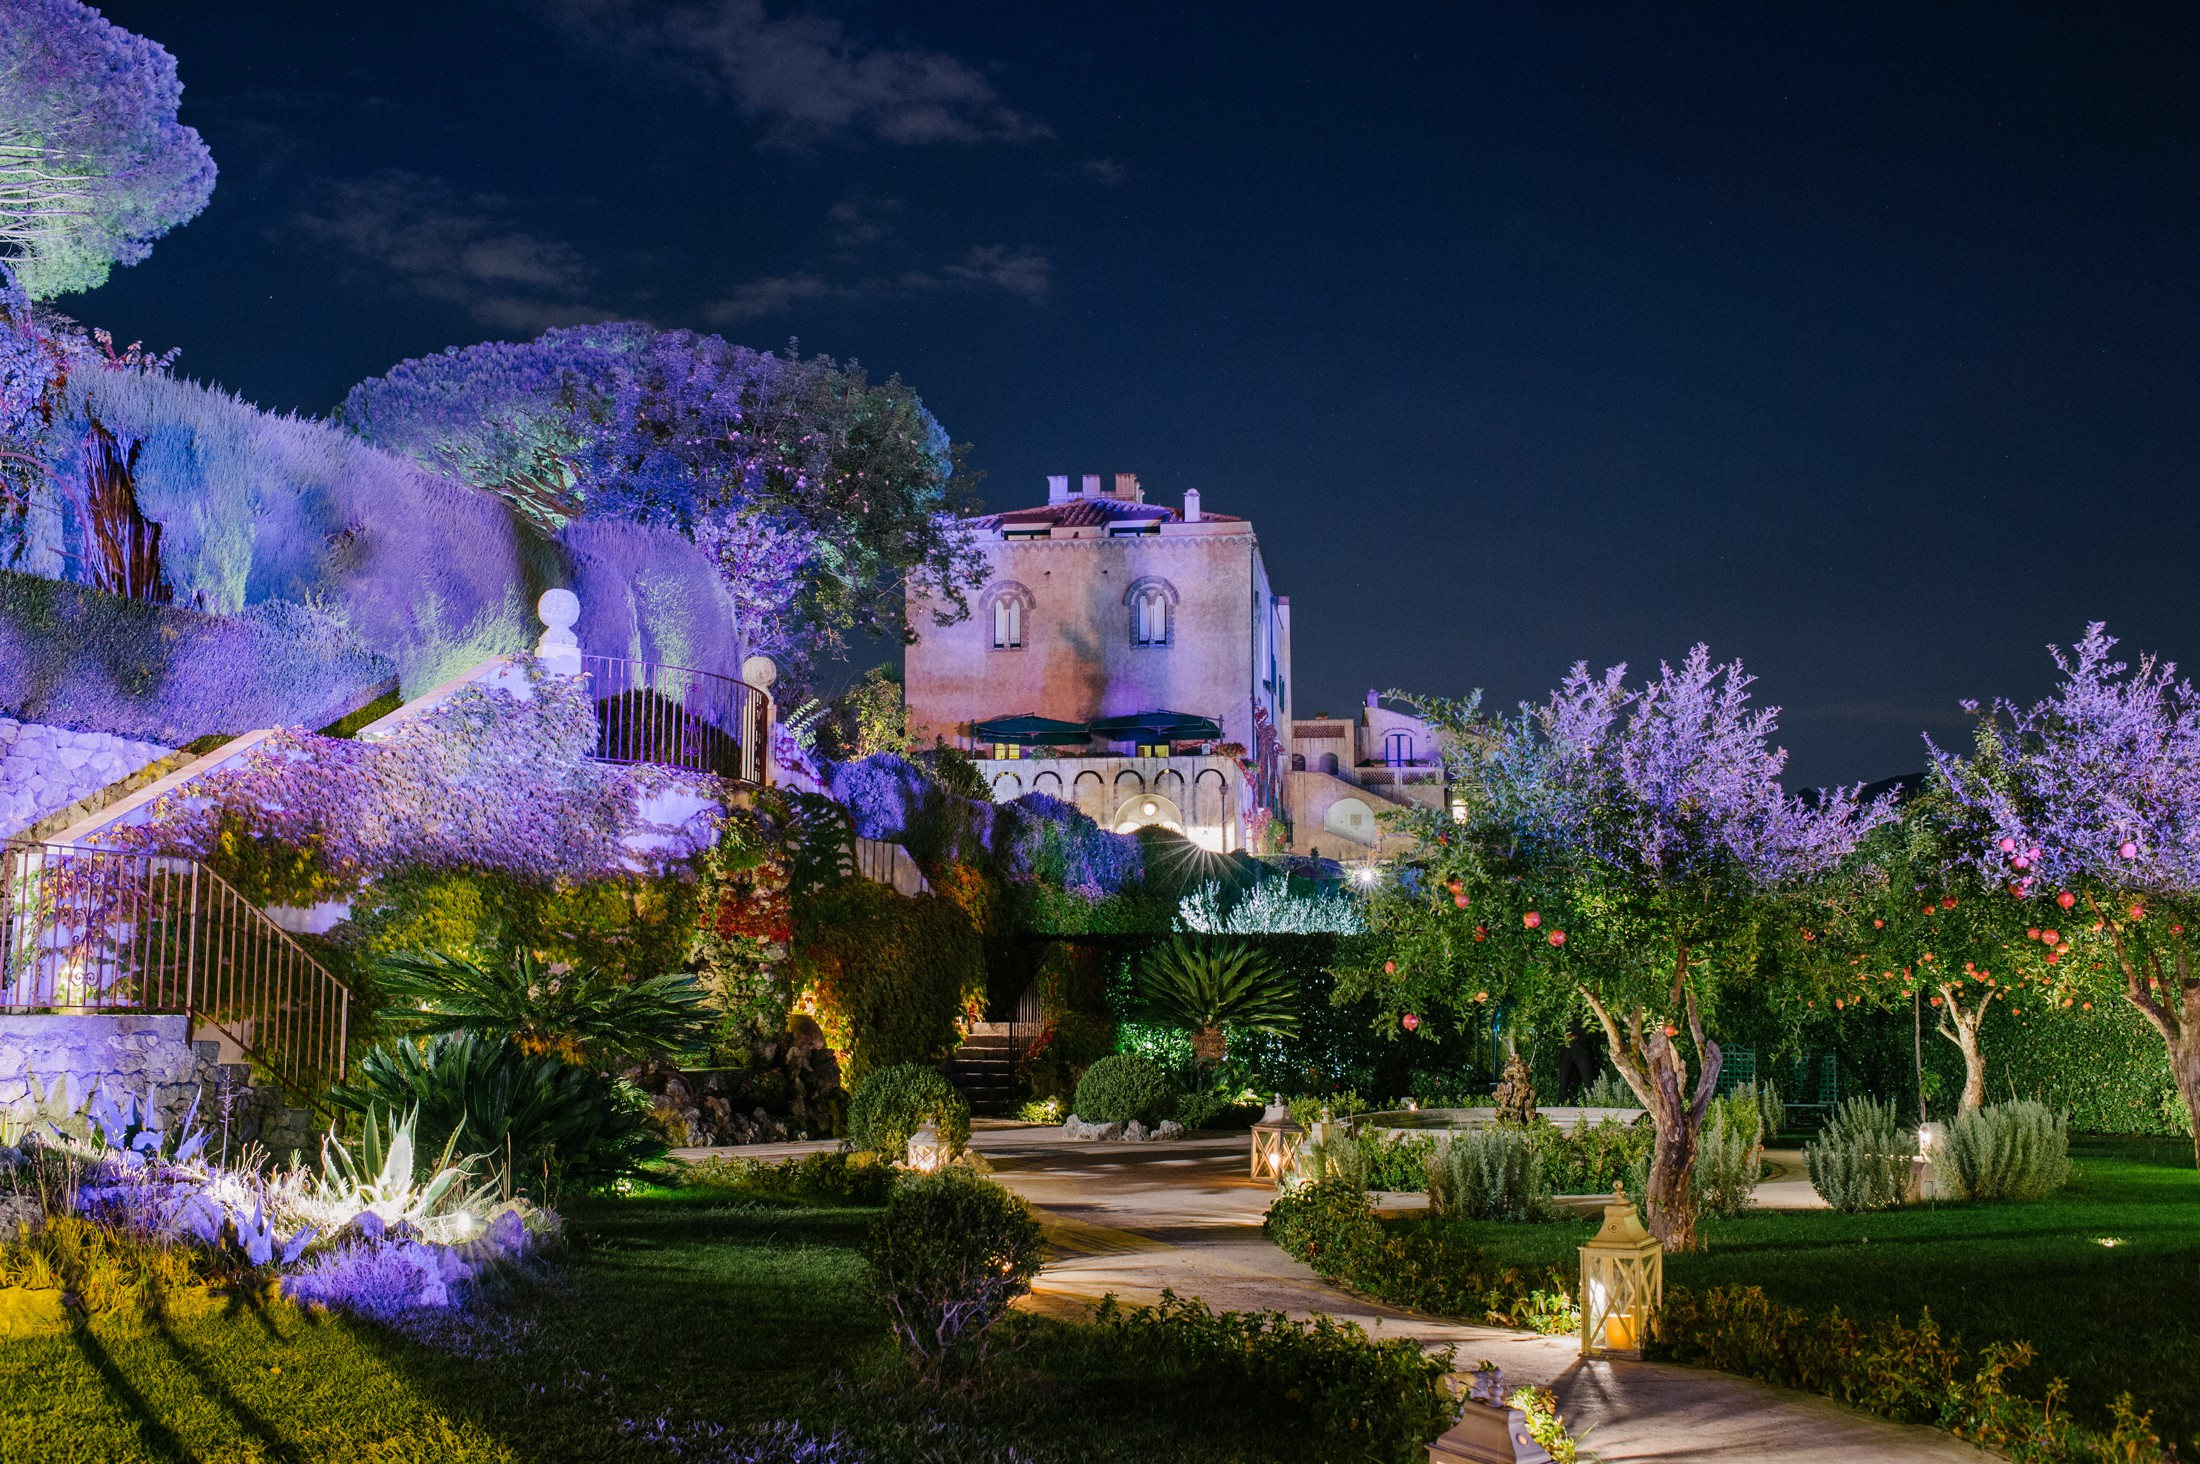 a view of vila cimbrone by night